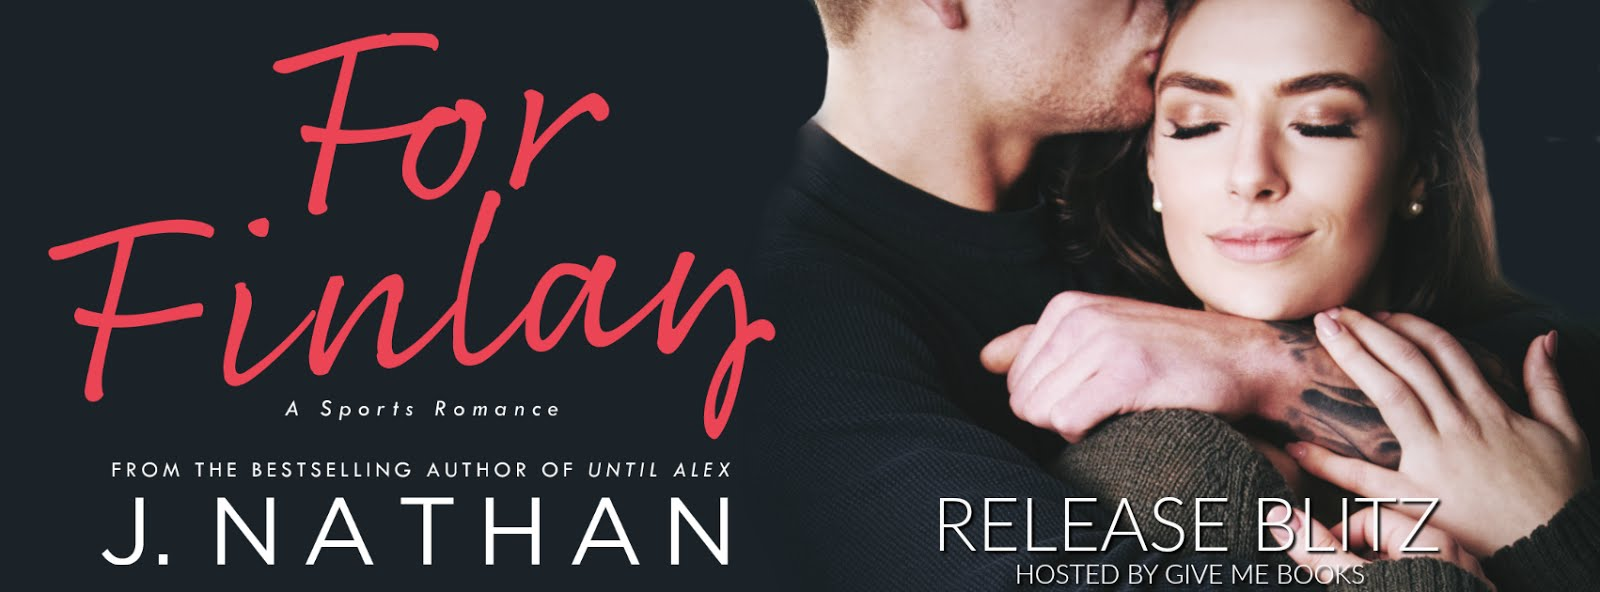 For Finlay Release Blitz